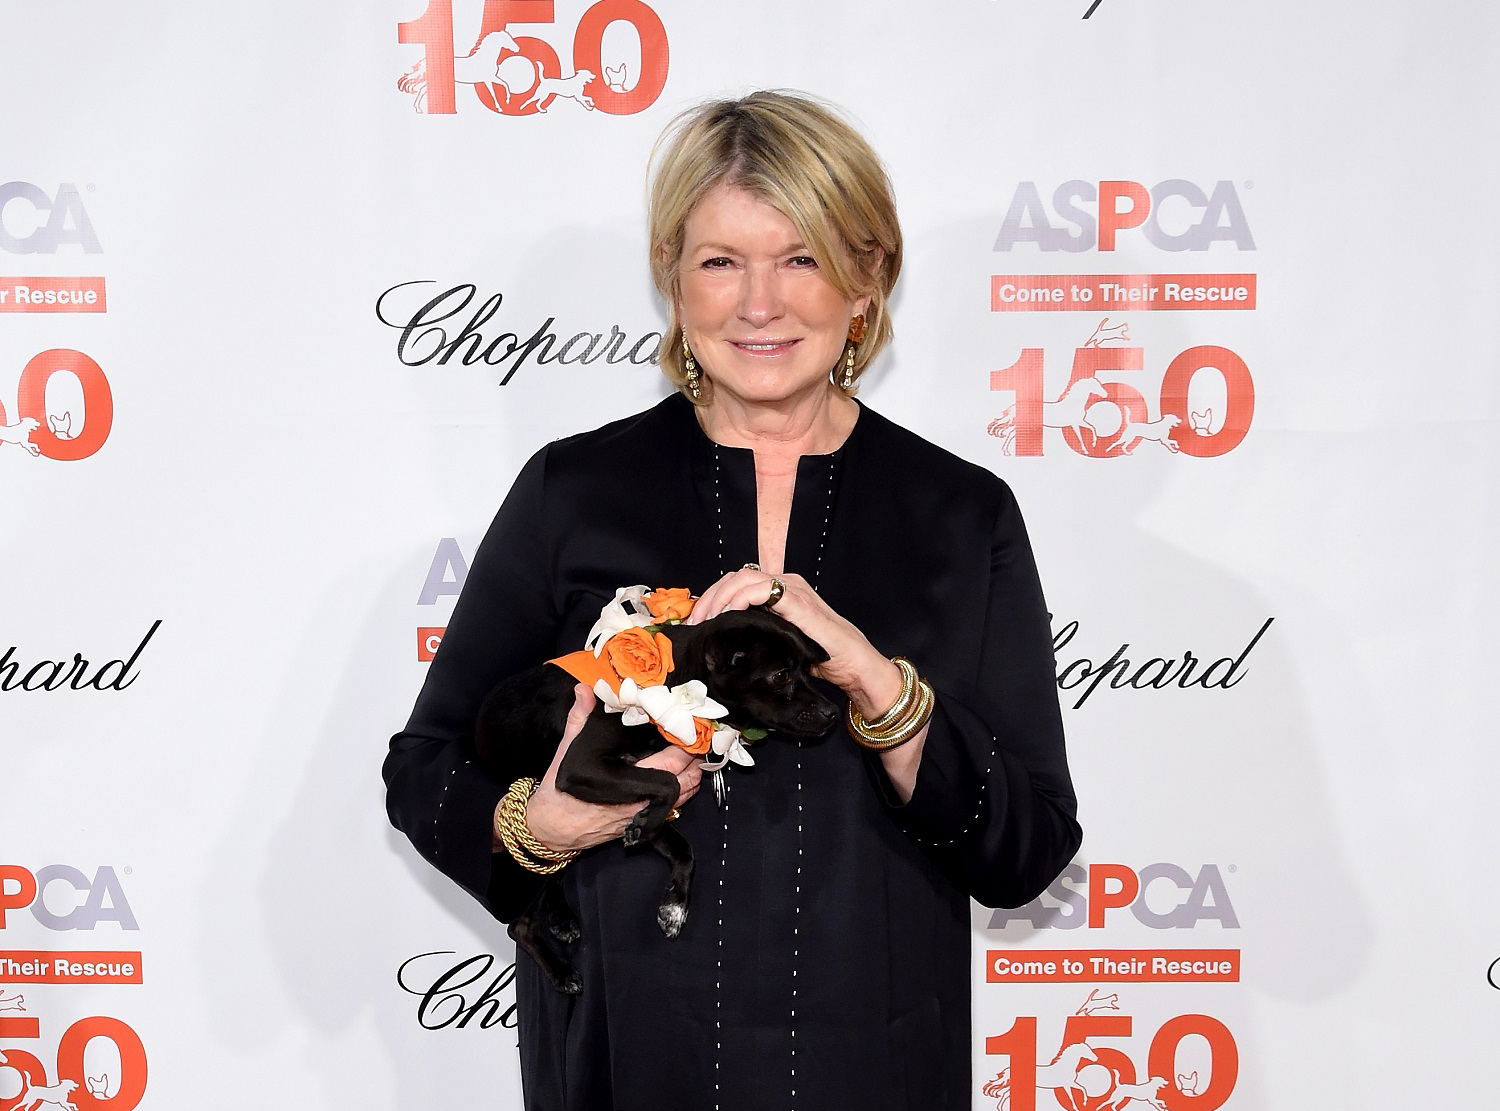 """""""NEW YORK, NY - APRIL 14: Martha Stewart attends ASPCA 19th Annual Bergh Ball honoring Drew Barrymore, hosted by Nathan Lane wiith music by Mark Ronson at the Plaza Hotel on April 14, 2016 in New York City (Photo by Jamie McCarthy/Getty Images for ASPCA)"""""""